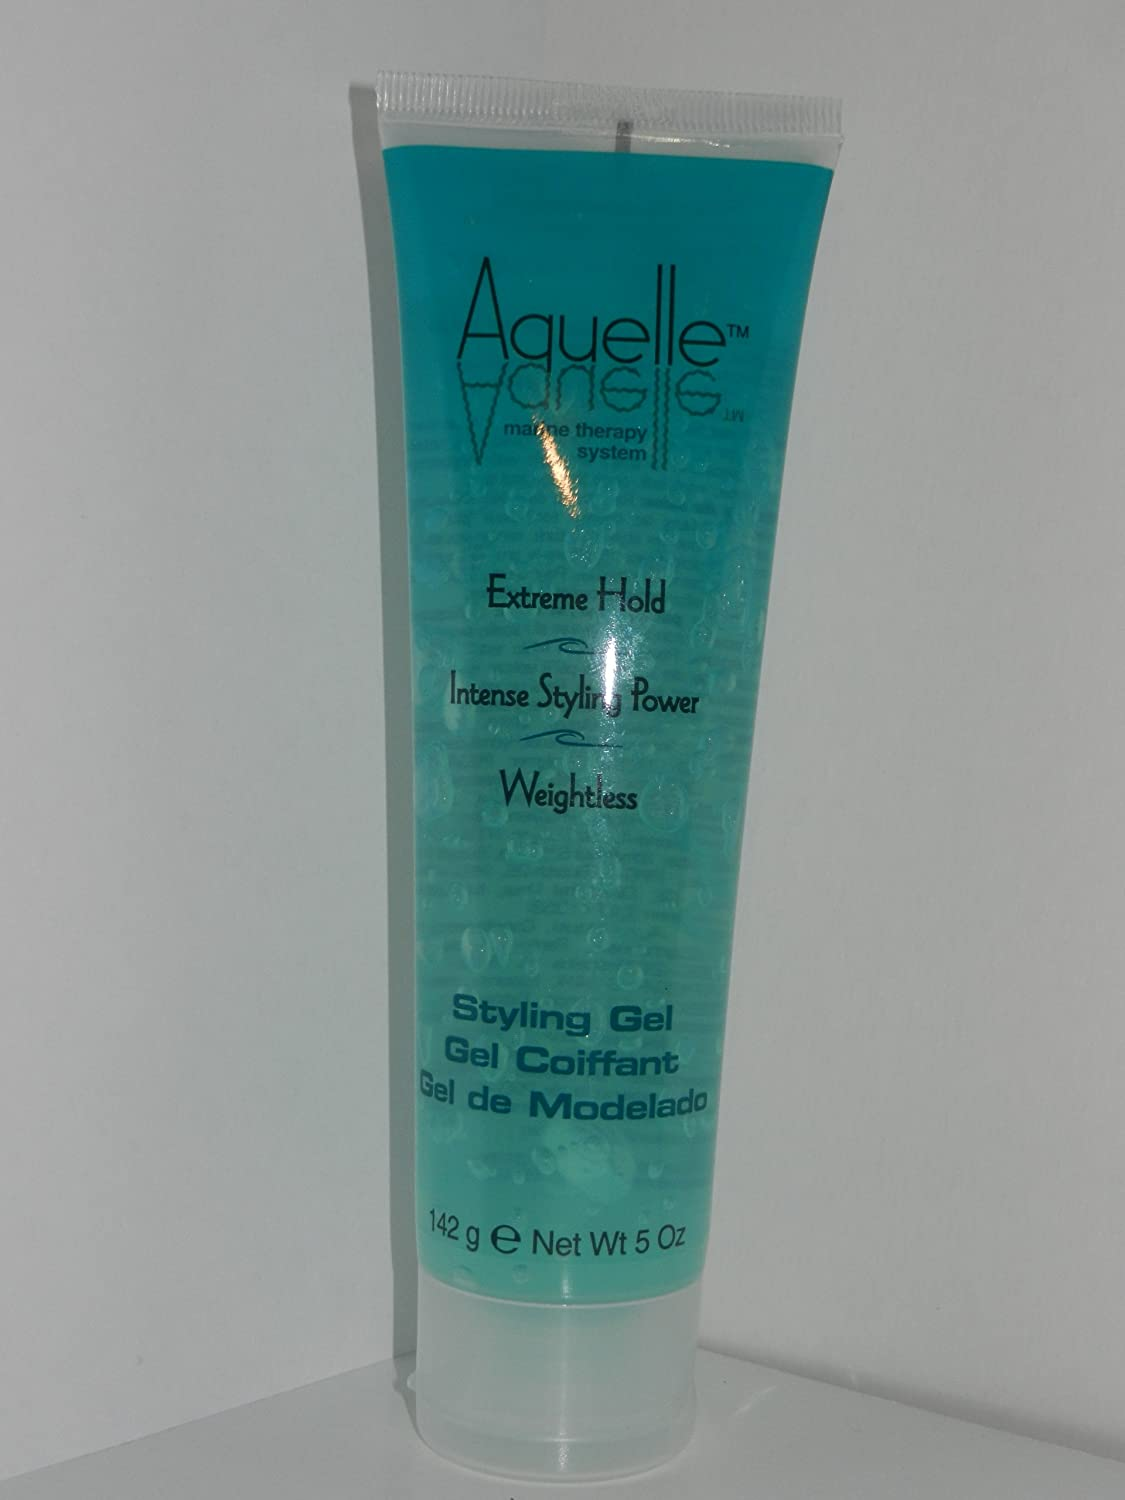 Aquelle Marine Therapy System Extreme Hold Weightless Styling Gel 5 Oz